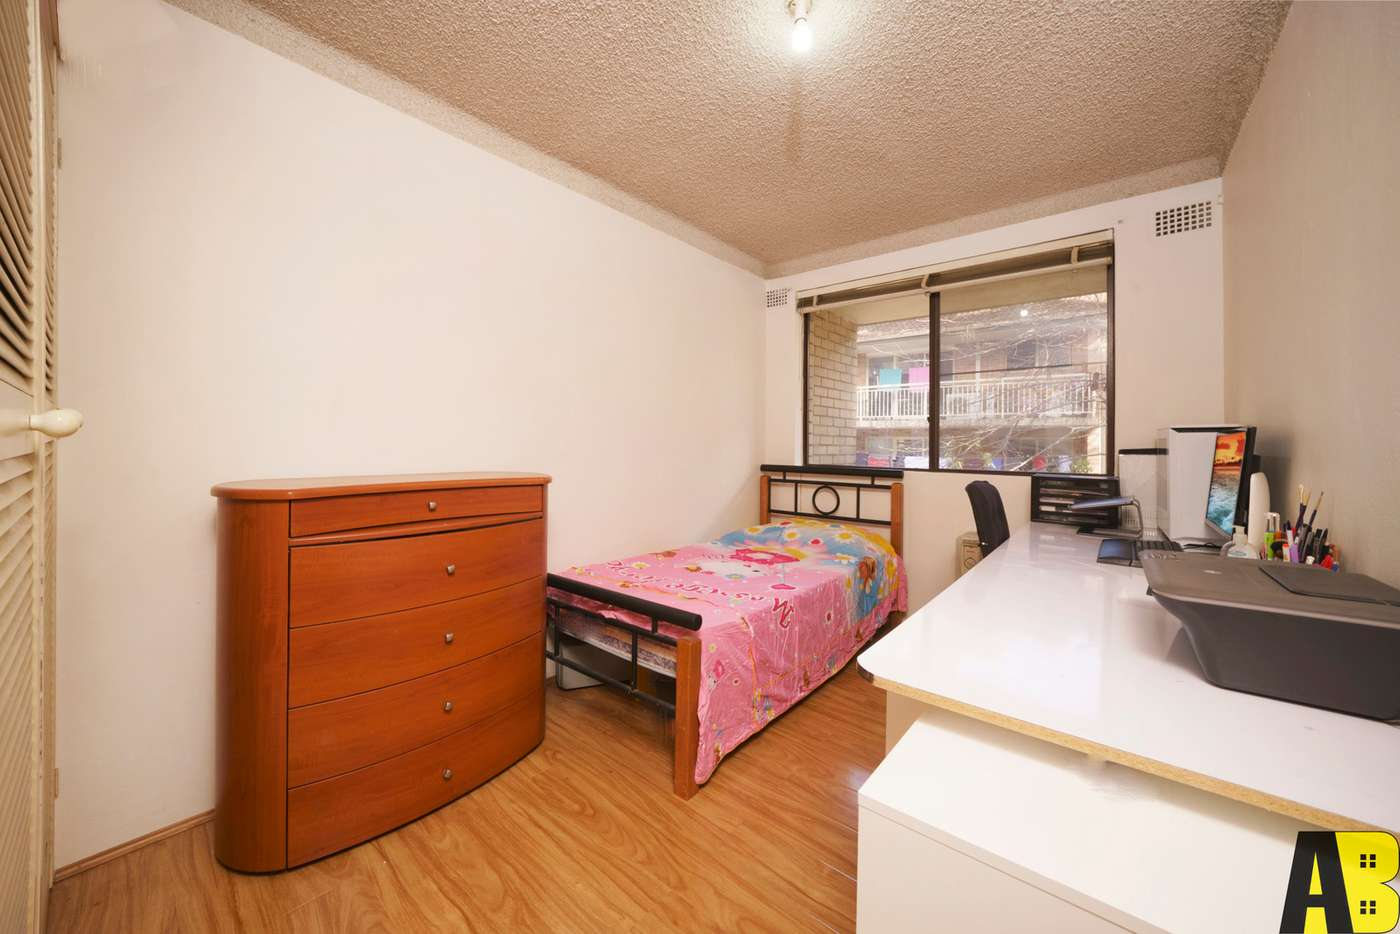 Fifth view of Homely house listing, 3/68 Meehan Street, Granville NSW 2142